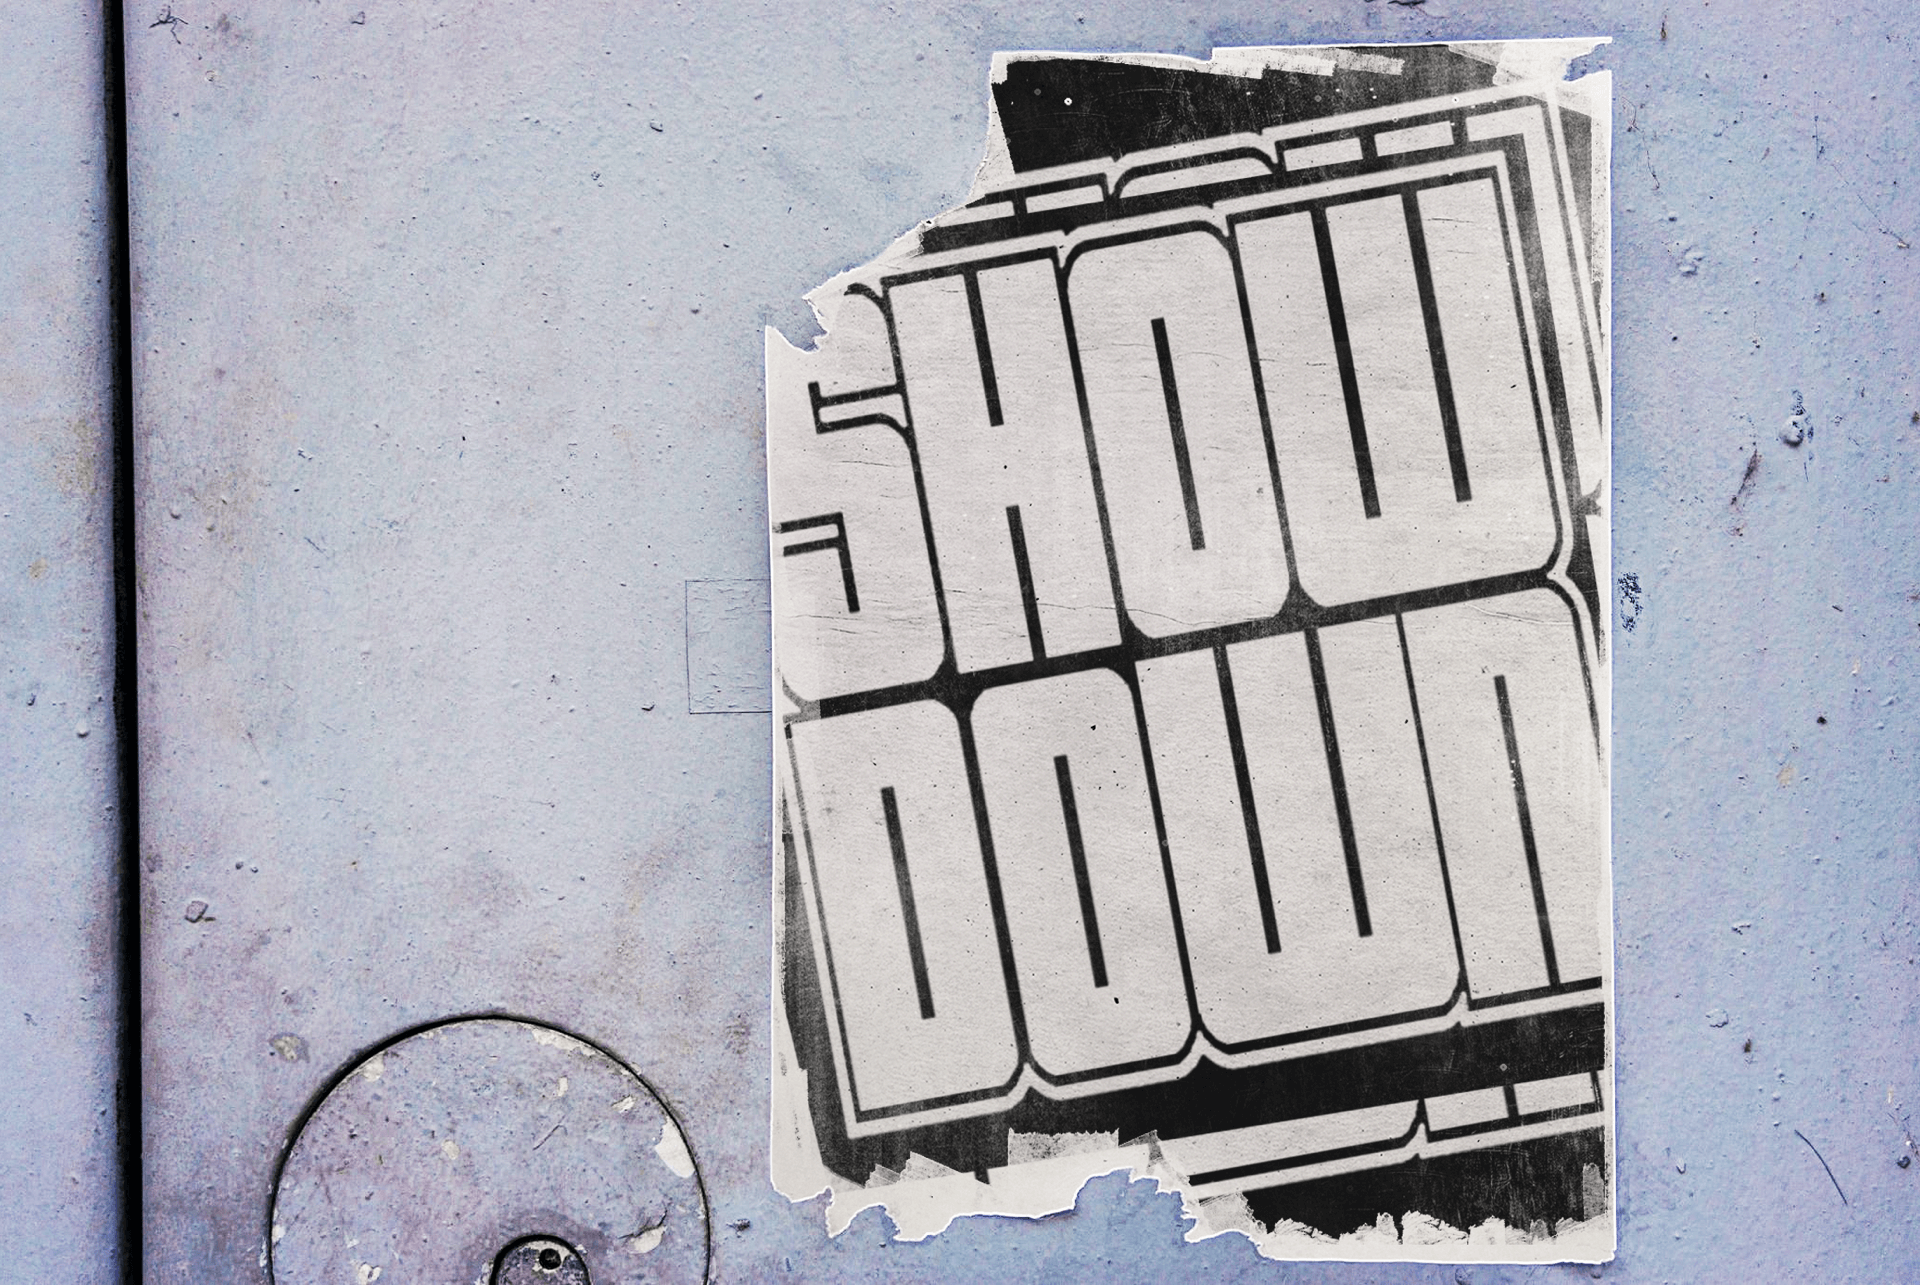 showdown-logo